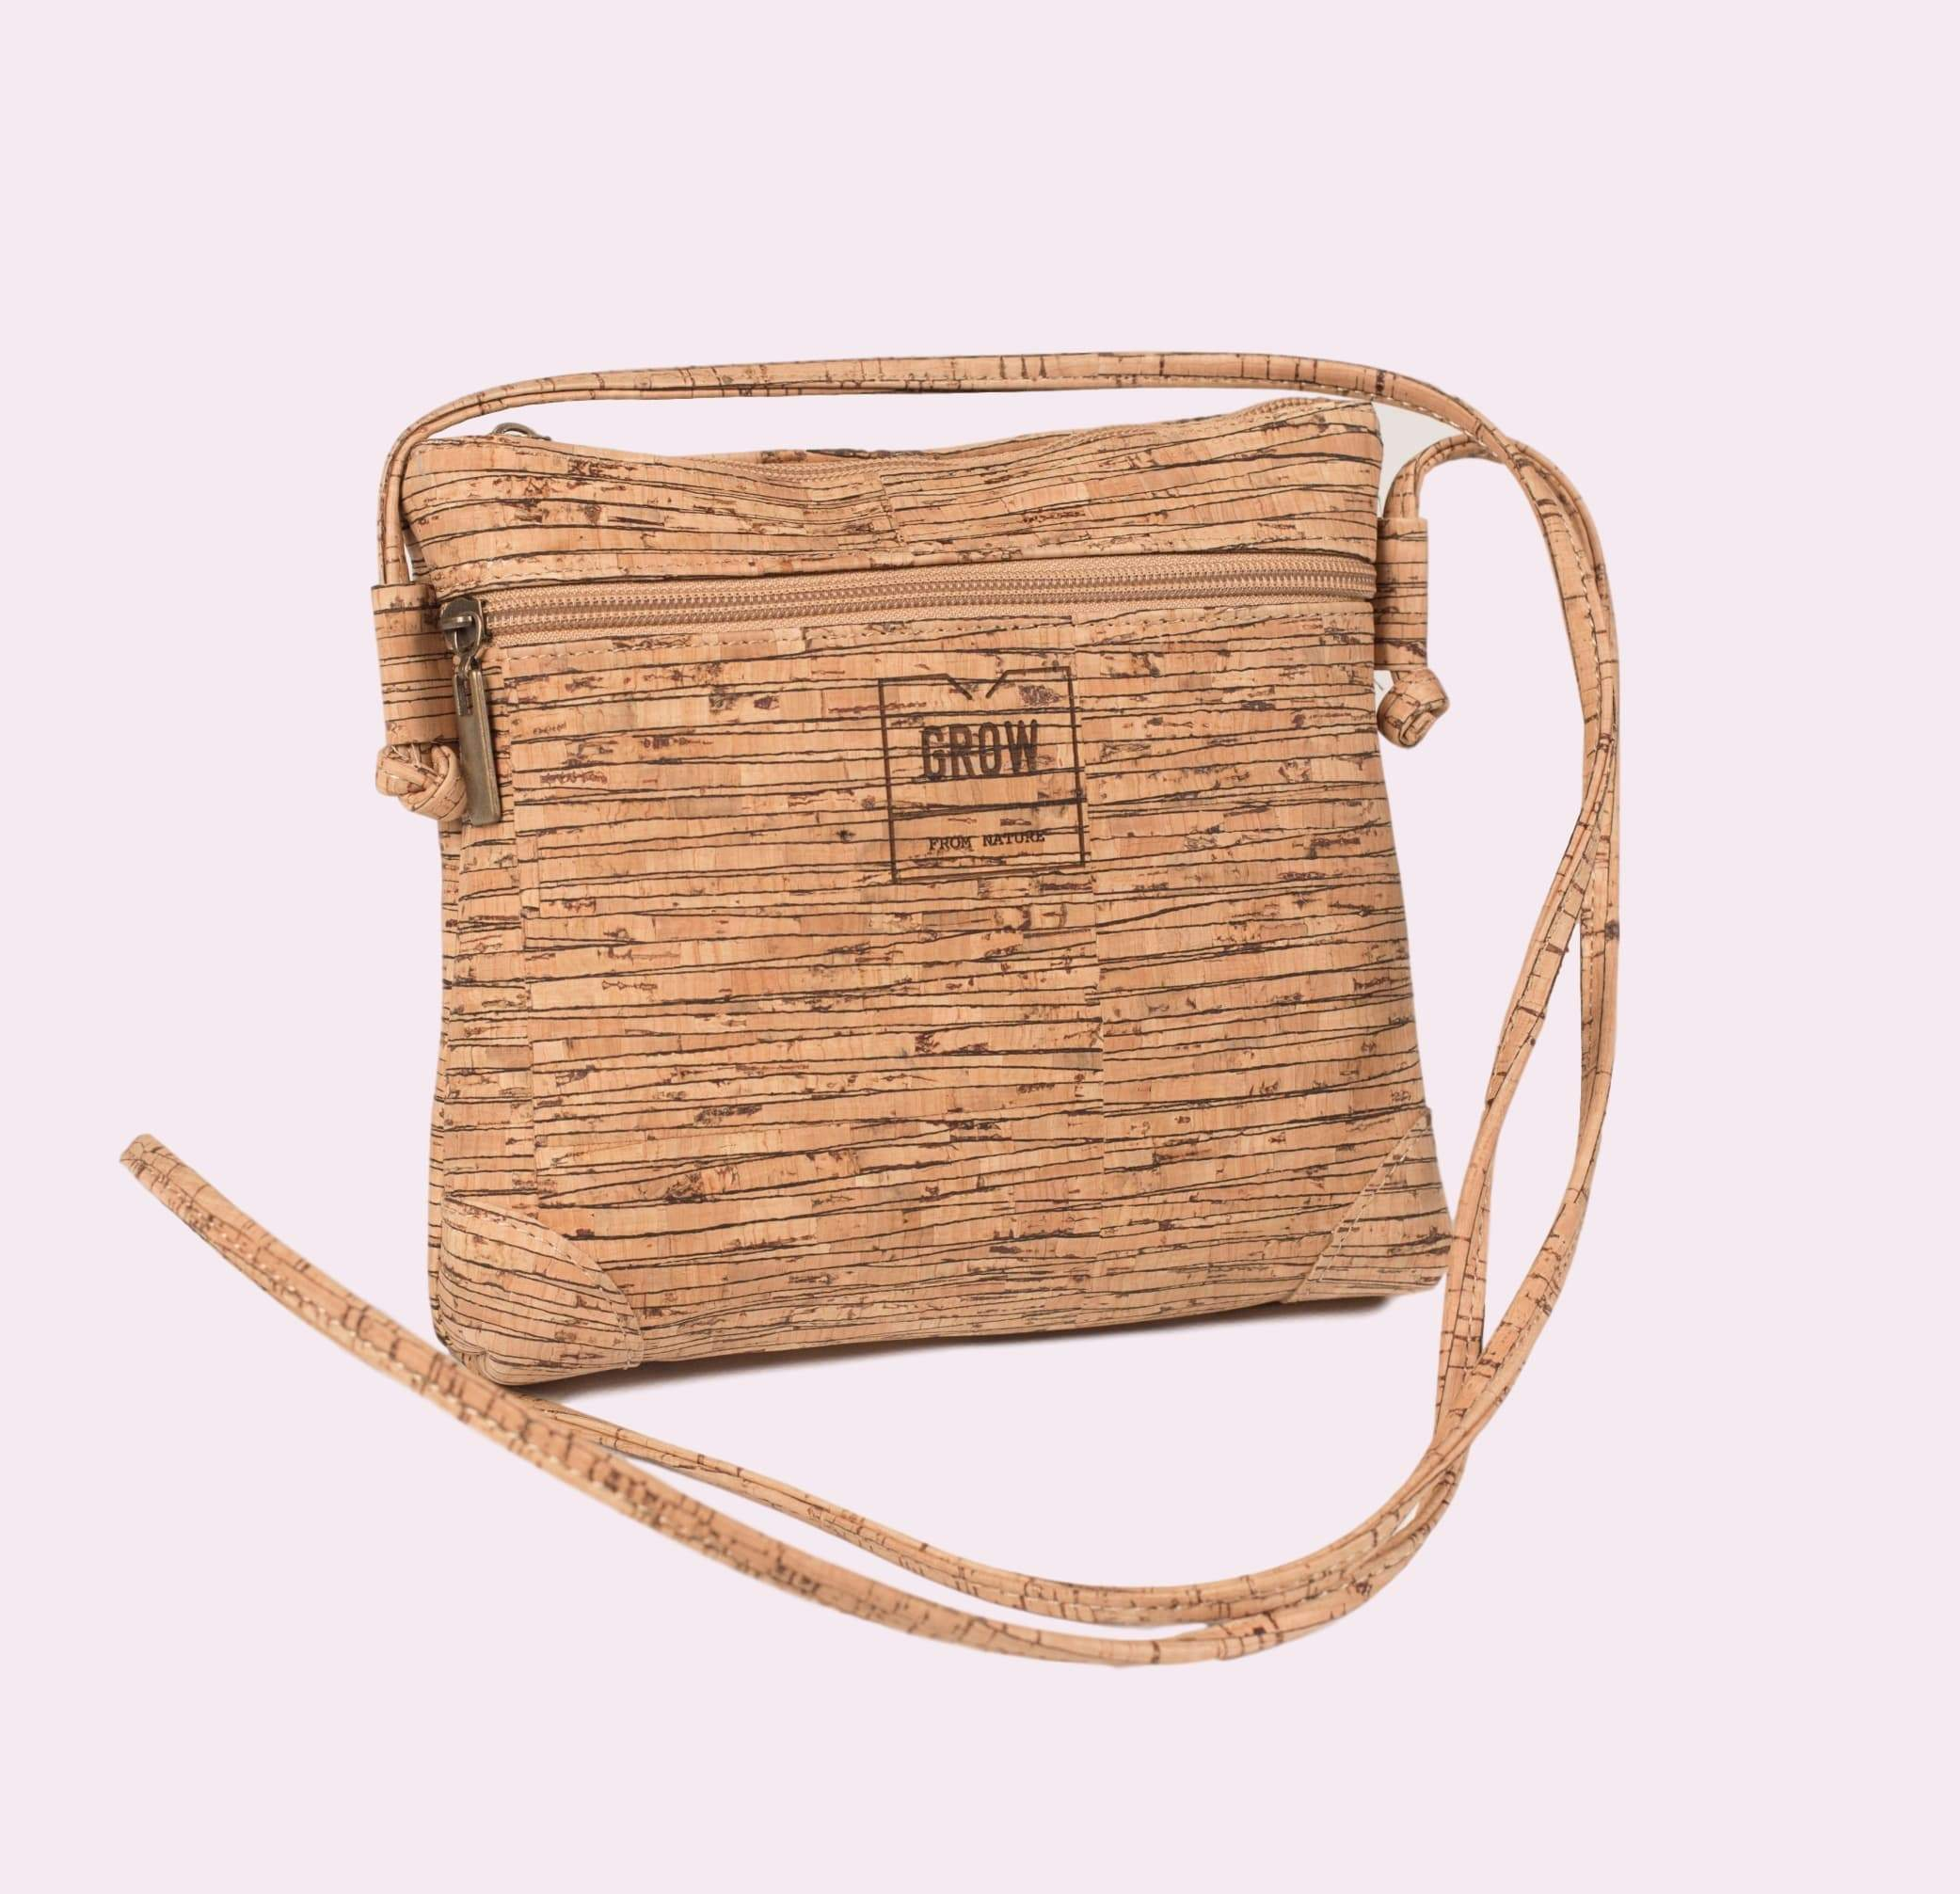 Cubana Crossbody Bag - Grow From Nature